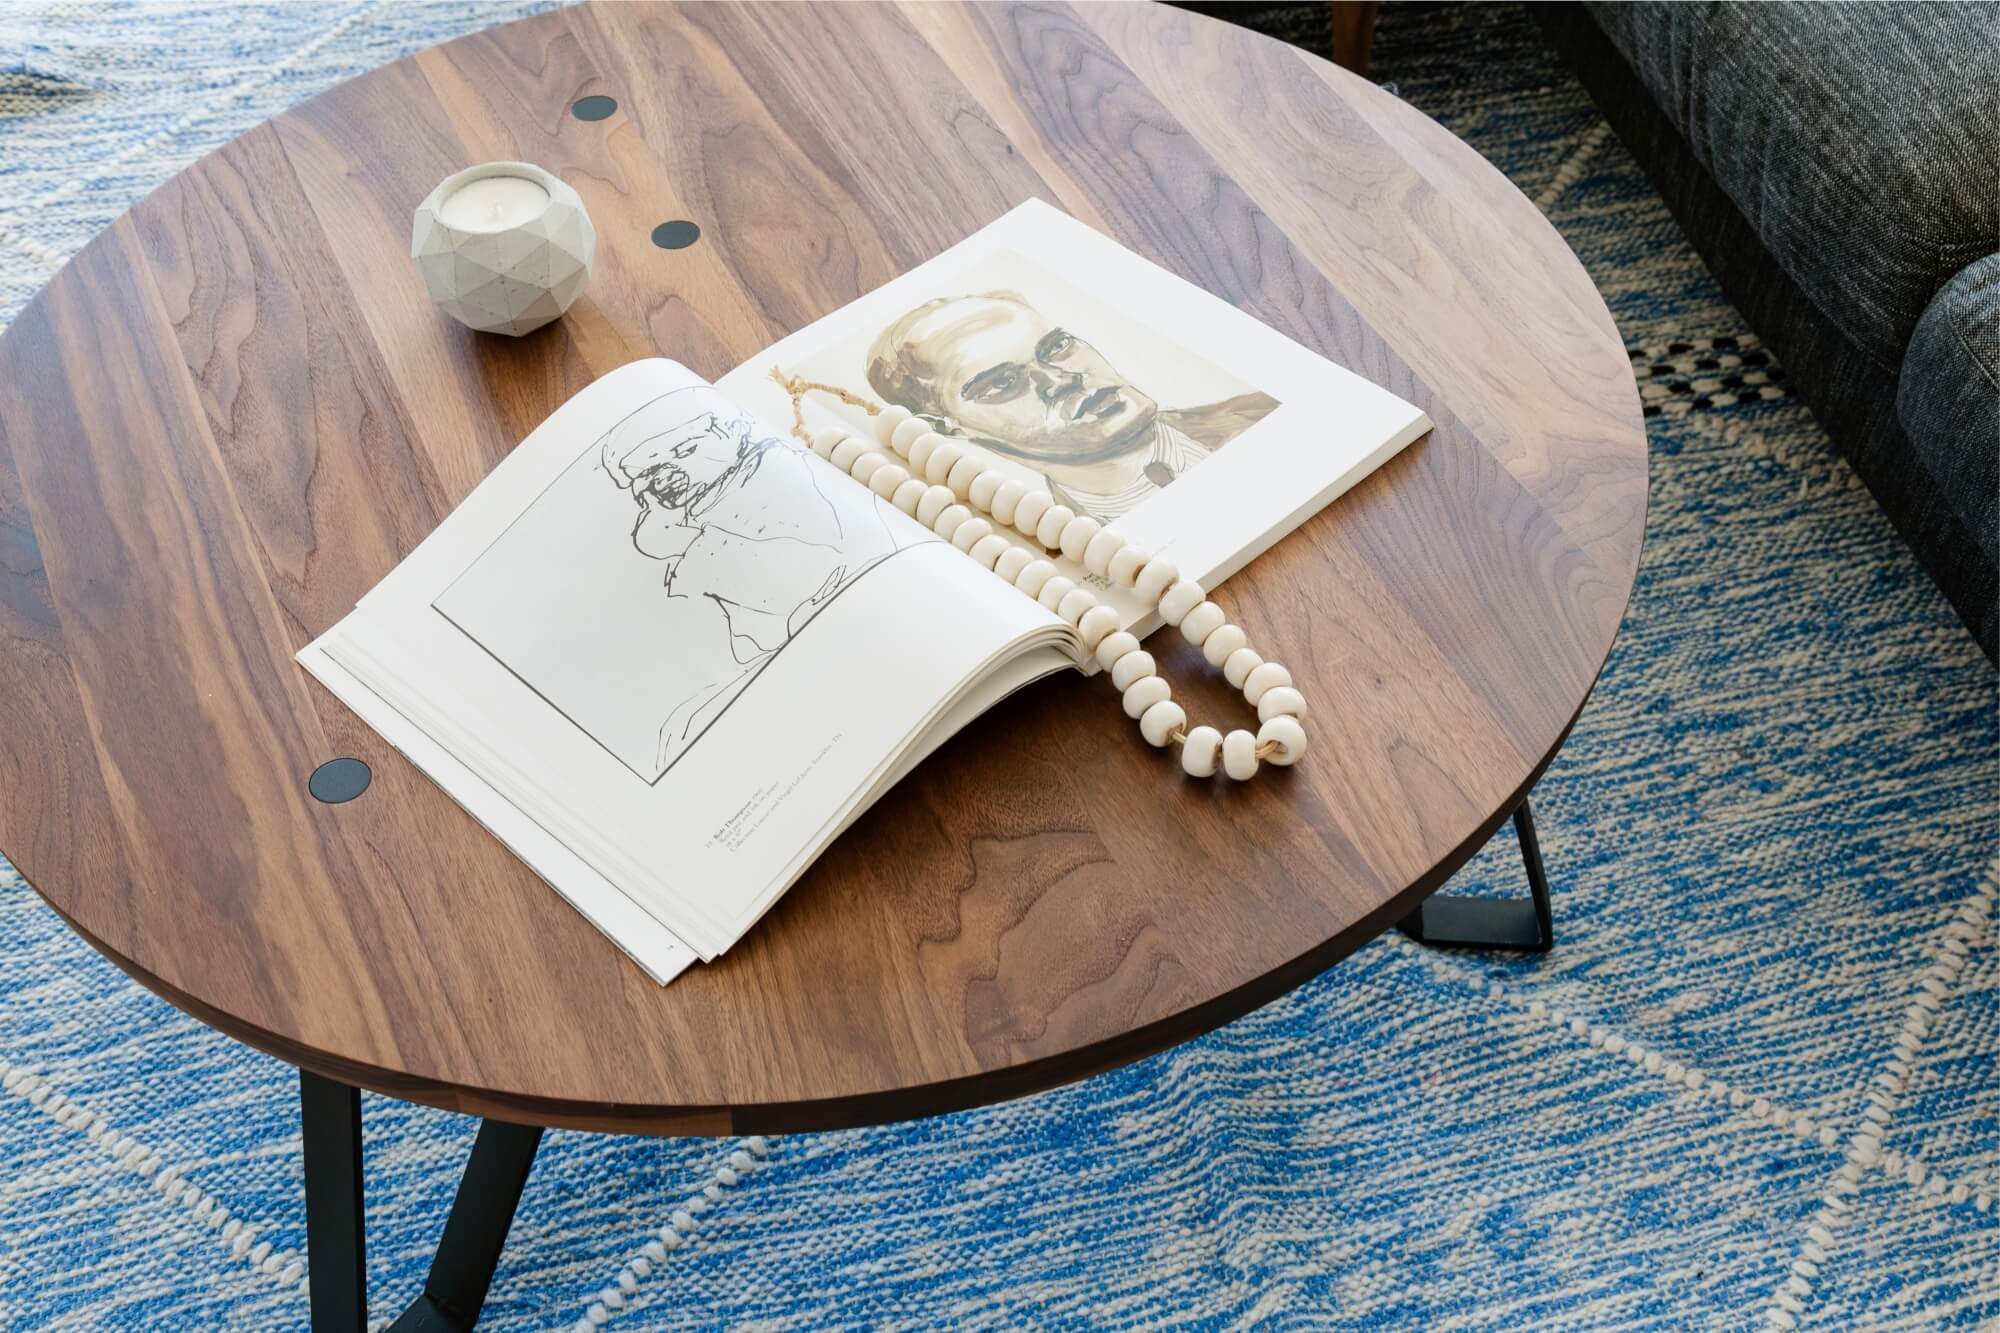 Round walnut coffee table on blue rug with a book on it.